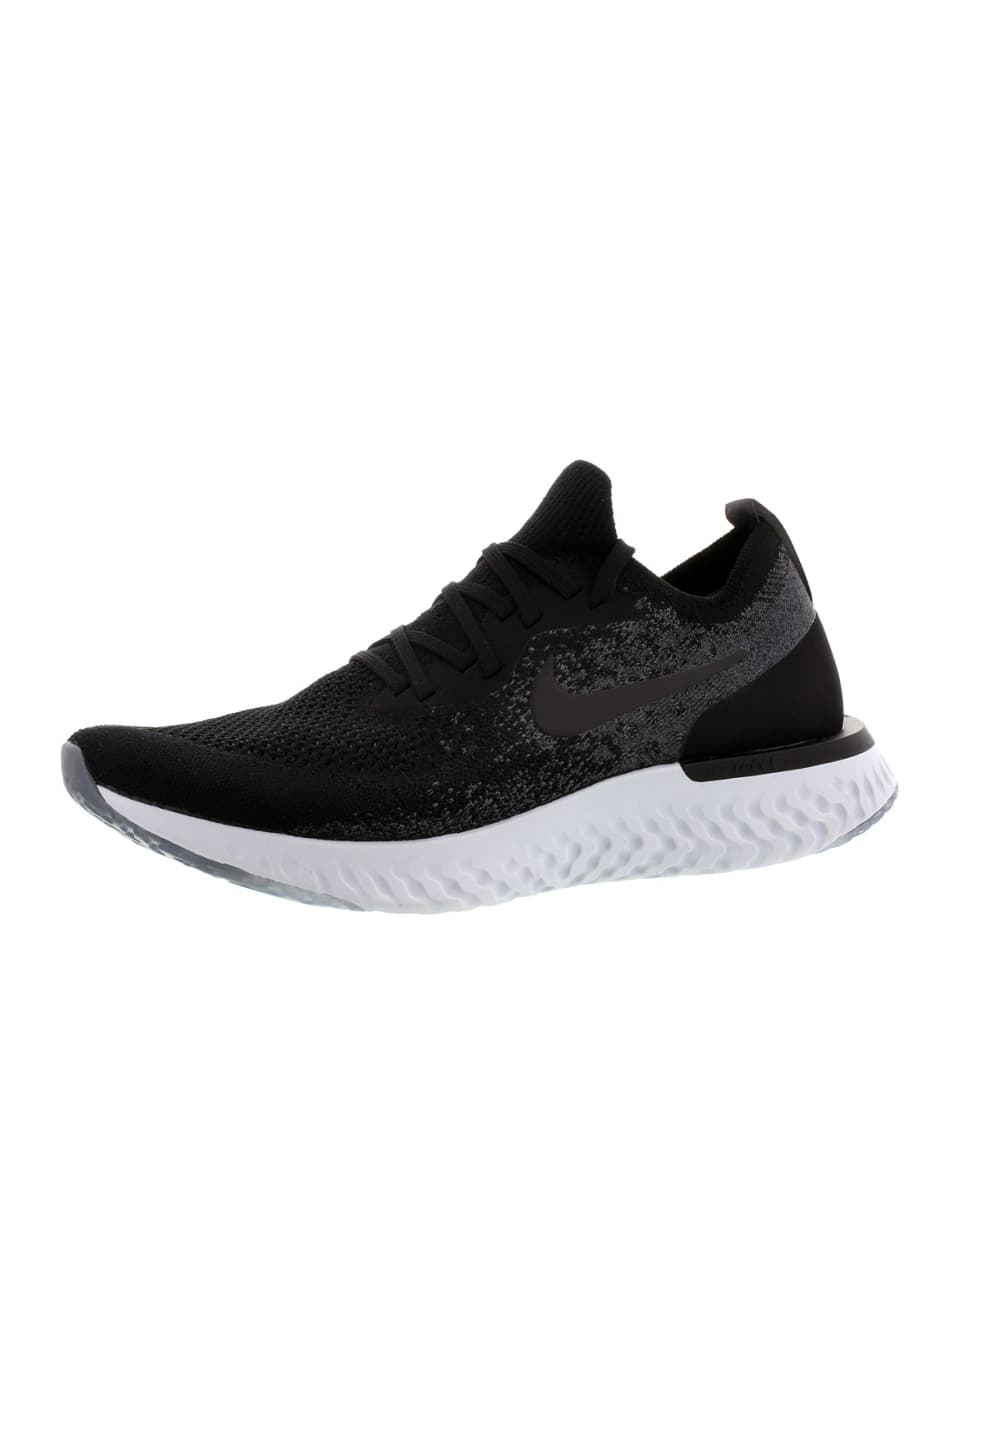 separation shoes abf87 da18a Nike Epic React Flyknit - Running shoes for Men - Black